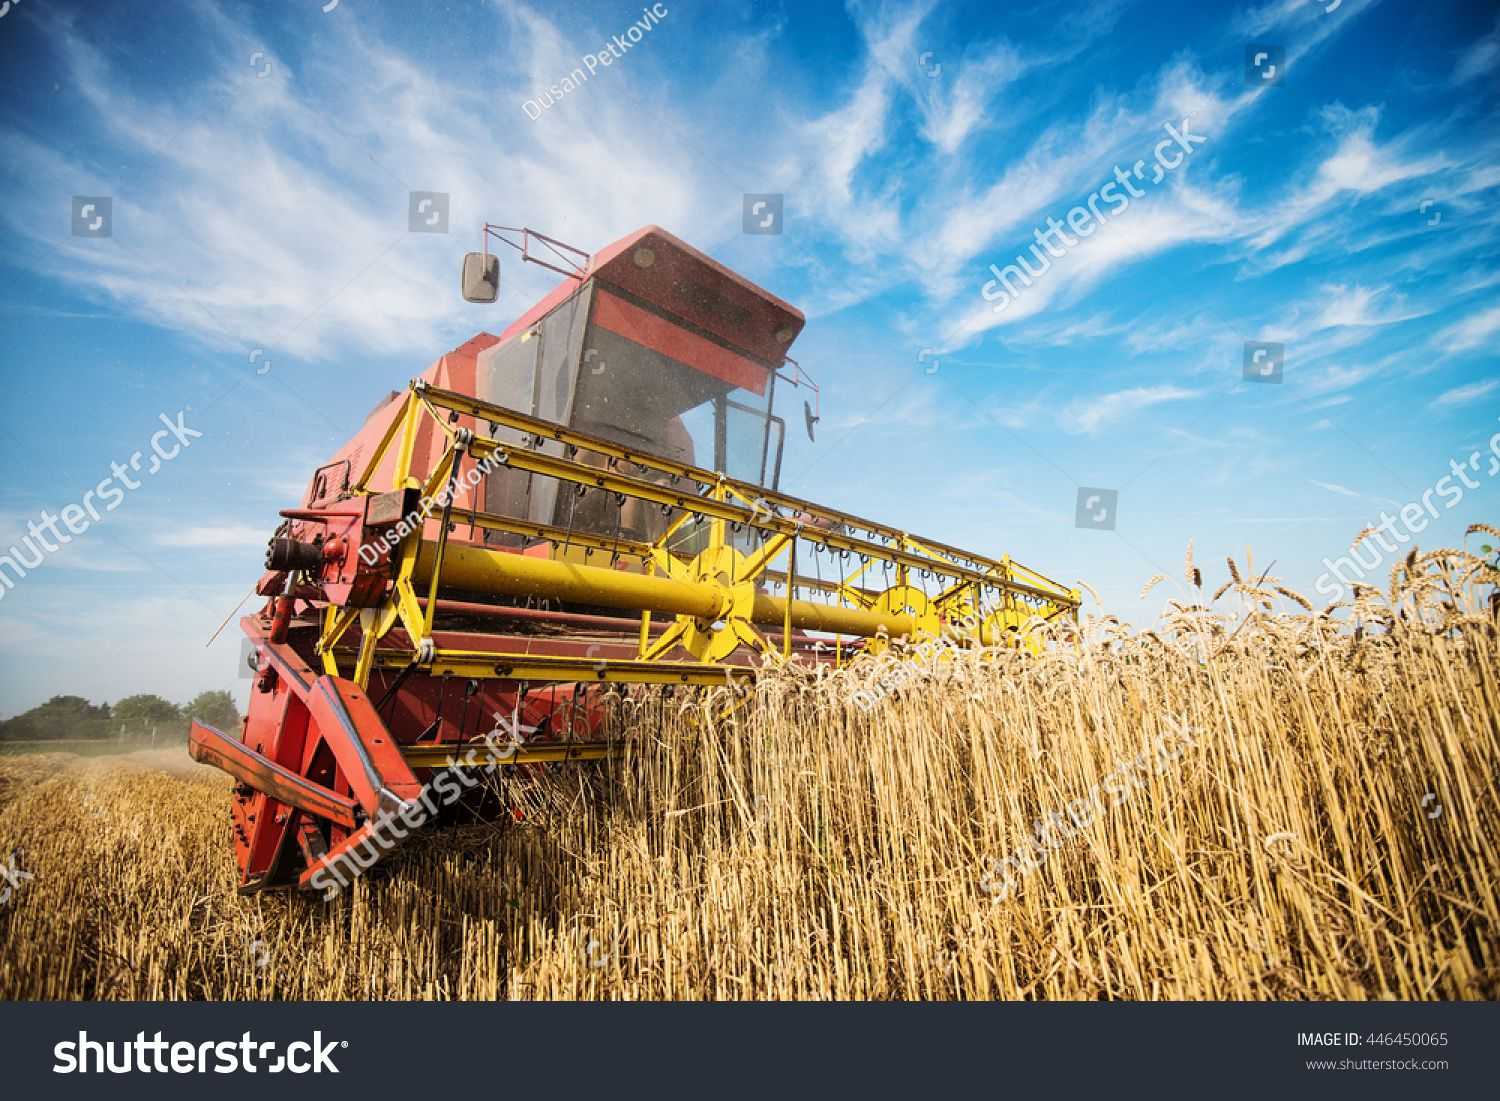 Close Up Of A Harvester Cropping The Field Sponsored